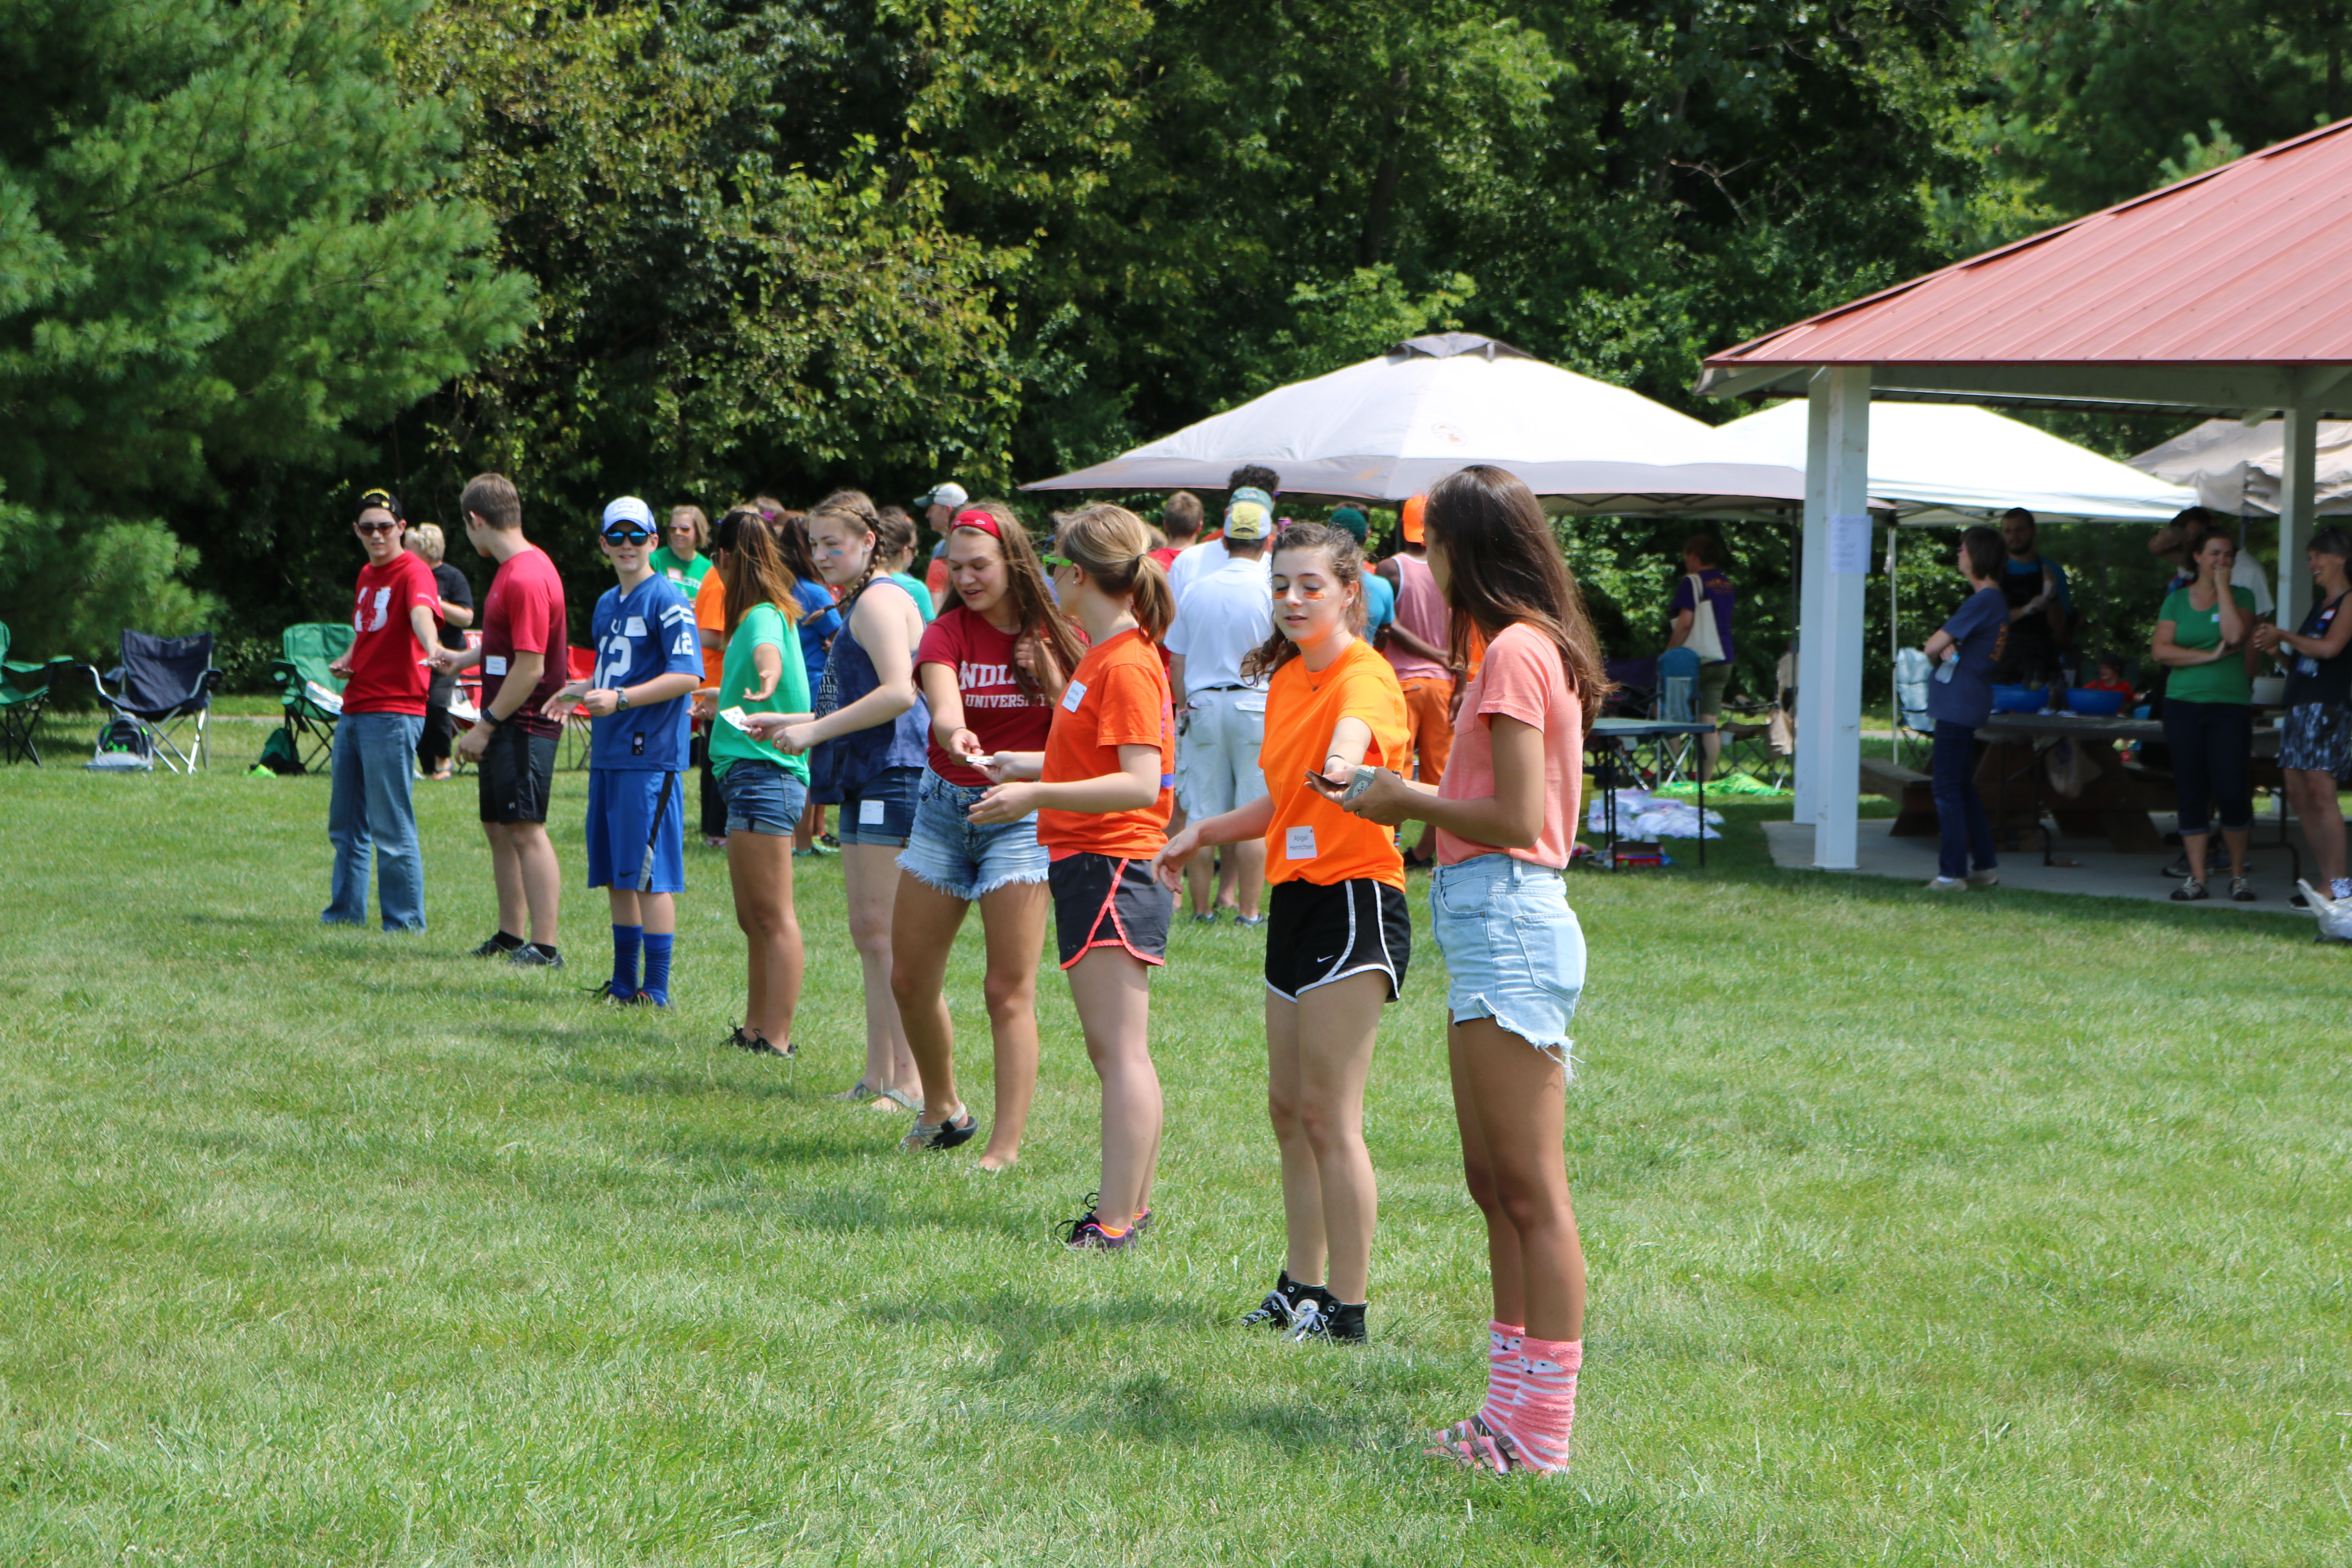 Competing at the high school kickoff retreat